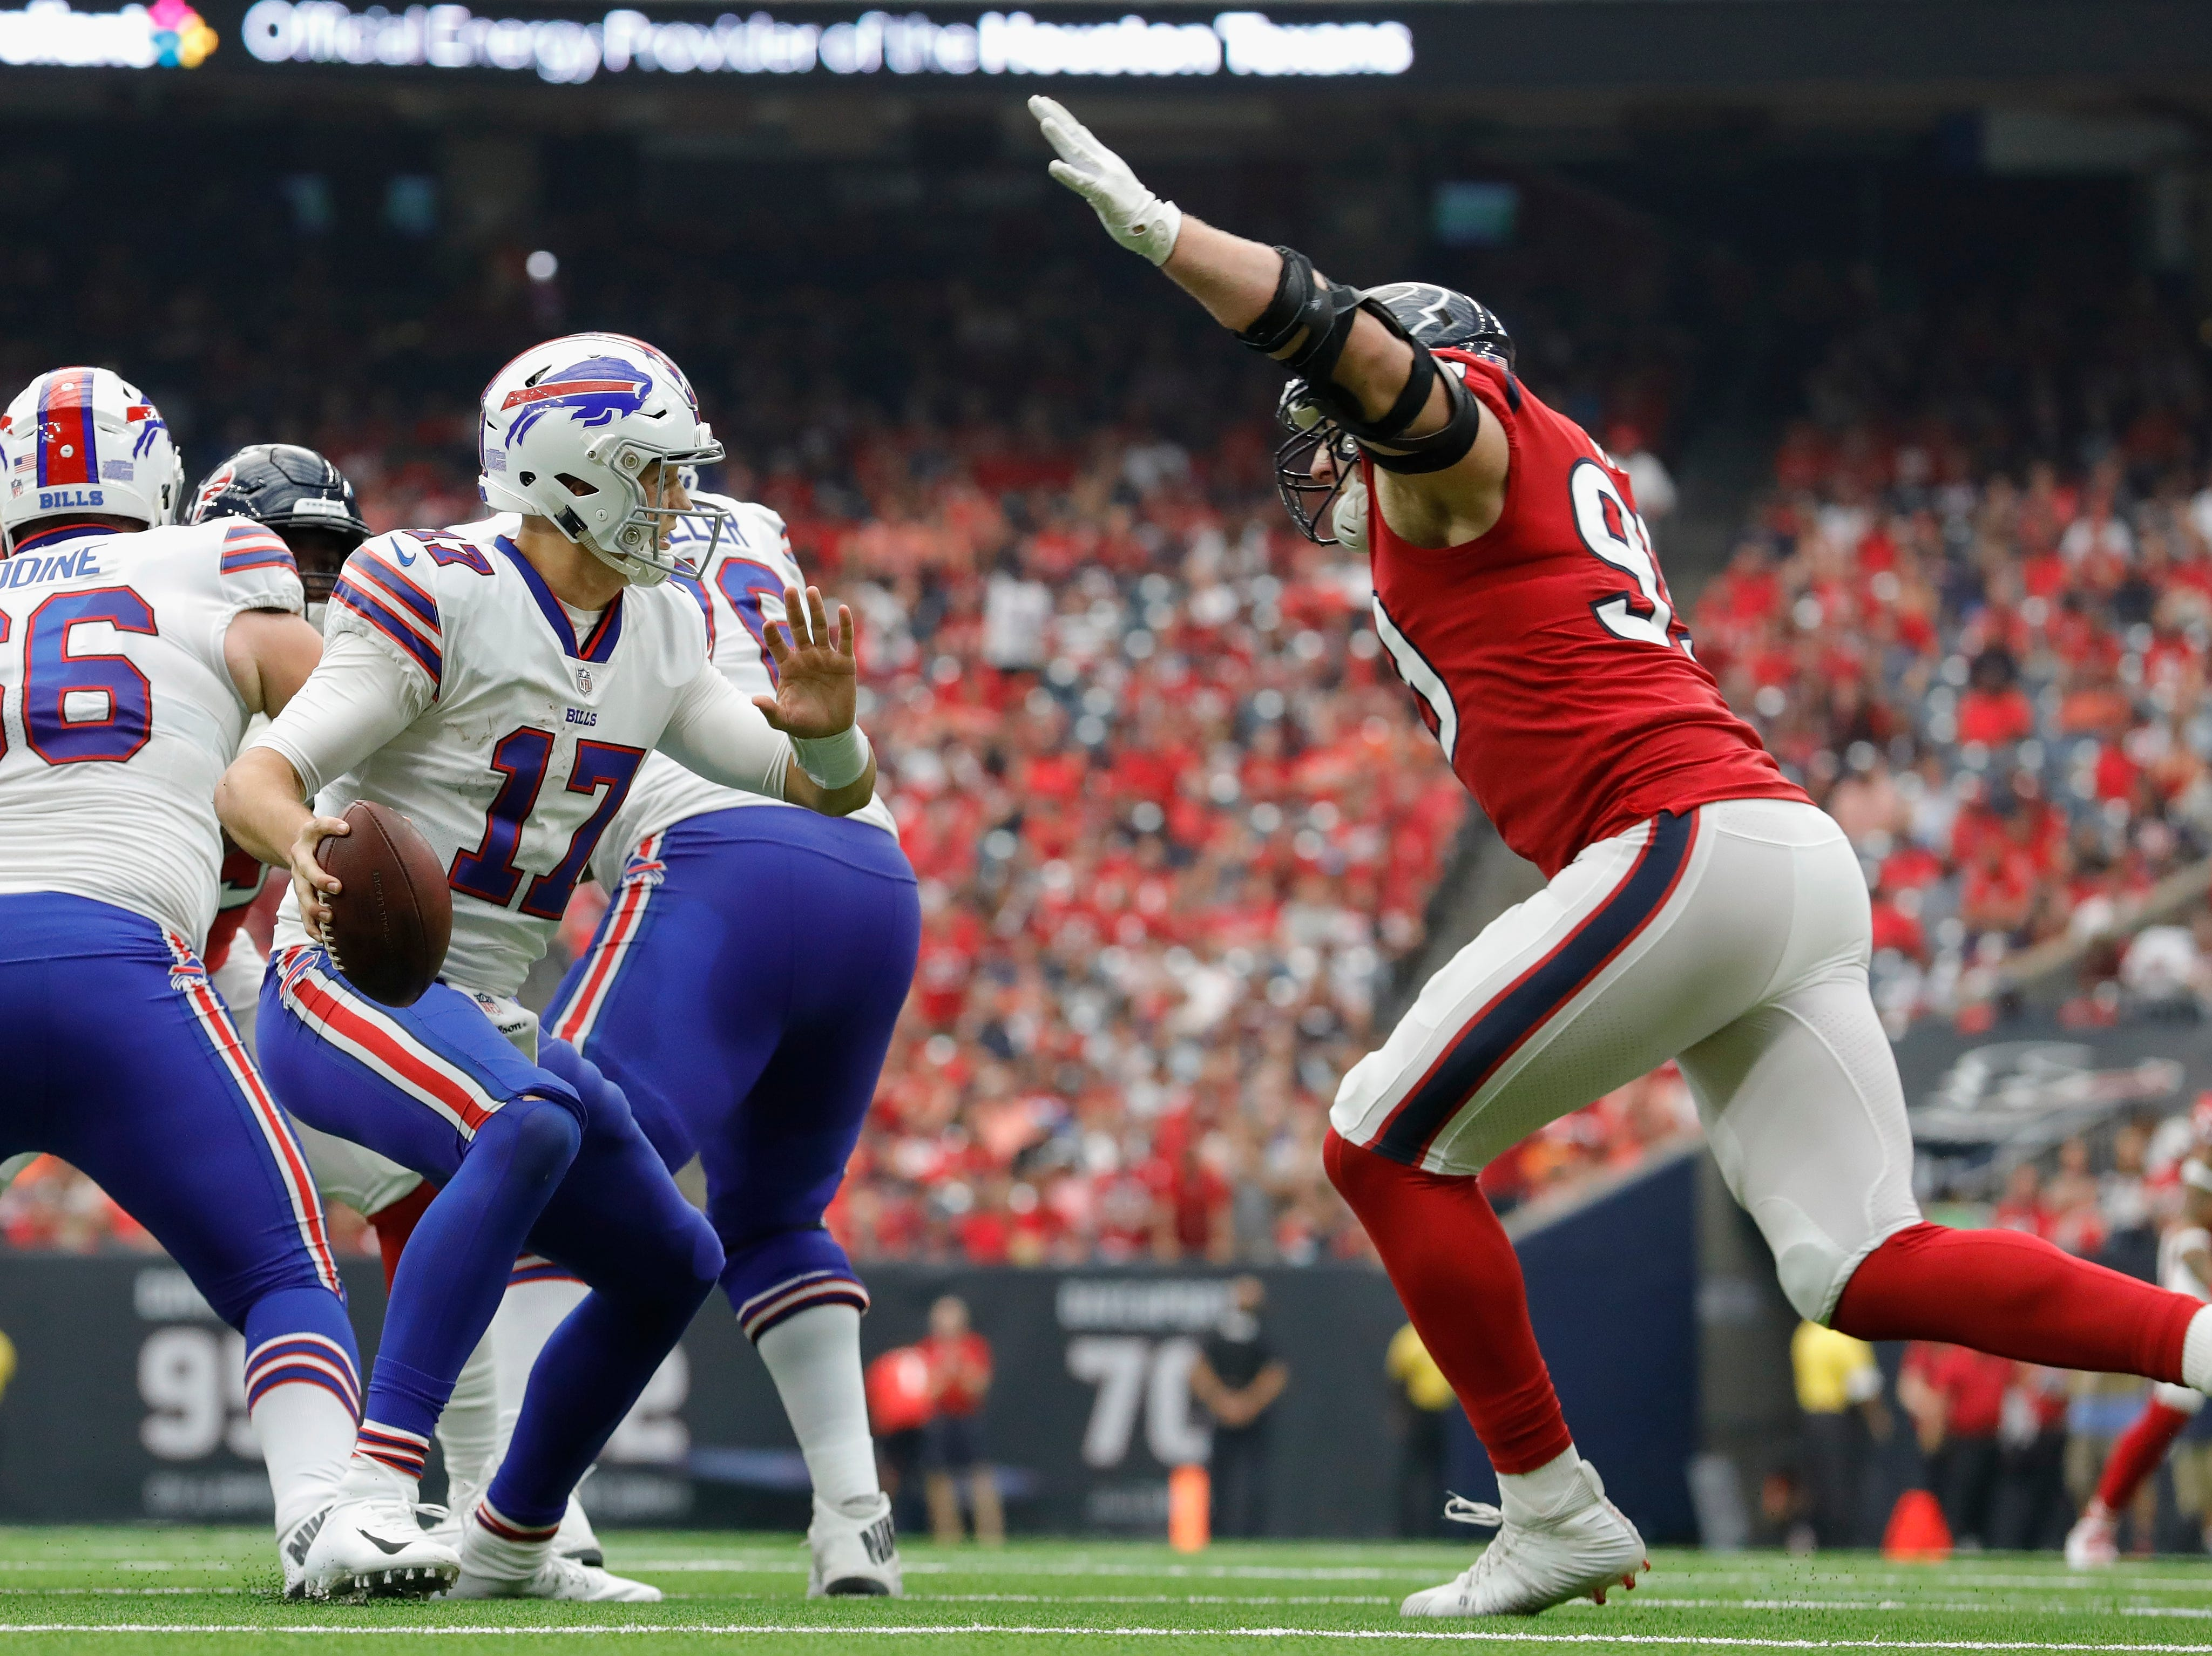 HOUSTON, TX - OCTOBER 14:  Josh Allen #17 of the Buffalo Bills is pressured by J.J. Watt #99 of the Houston Texans in the second half at NRG Stadium on October 14, 2018 in Houston, Texas.  (Photo by Tim Warner/Getty Images)